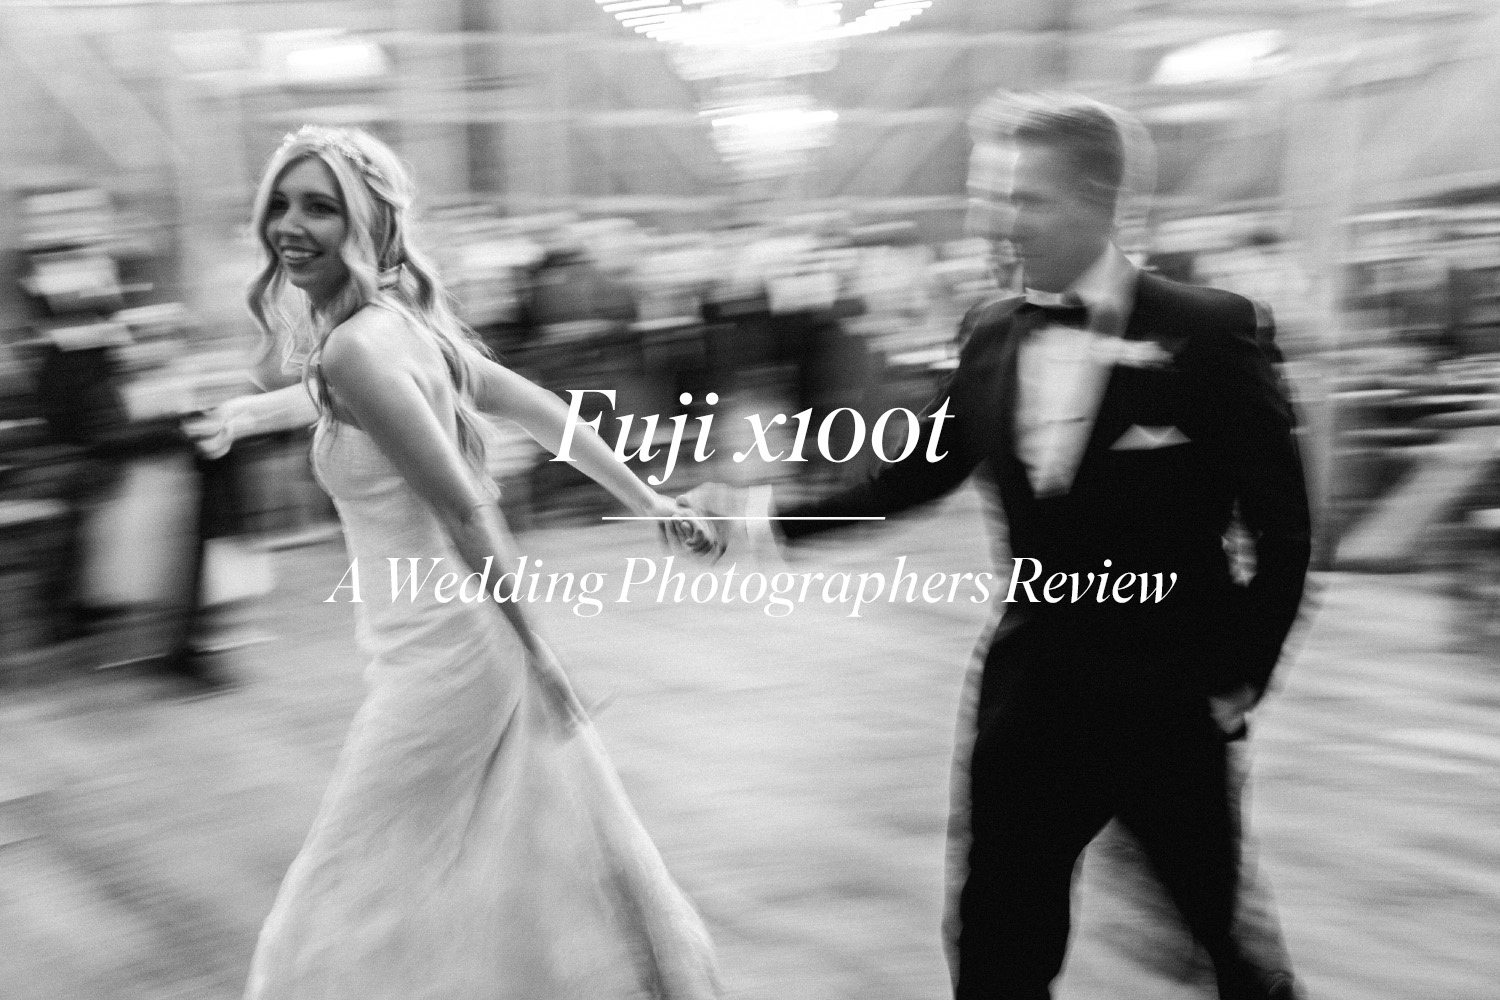 Fuji x100t wedding photographer real life review